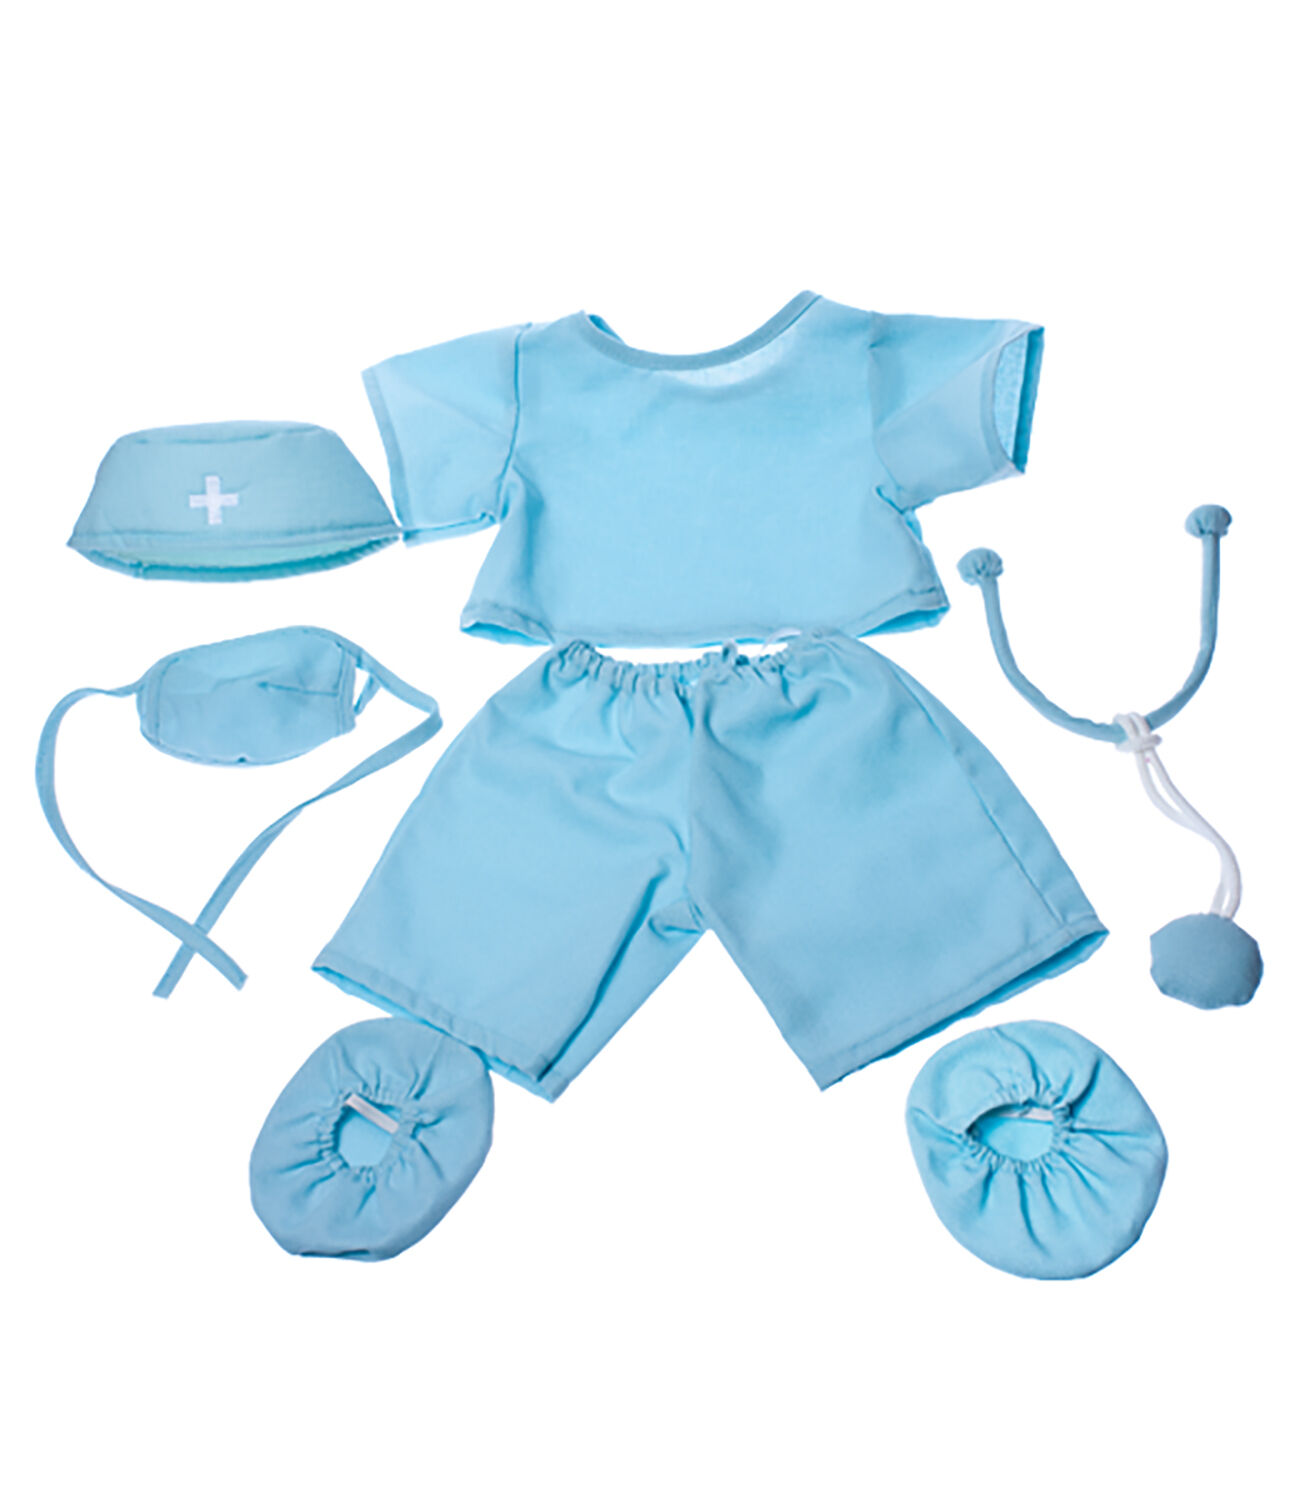 Doctor Scrubs Outfit Teddy Bear Clothes Fits Most 14